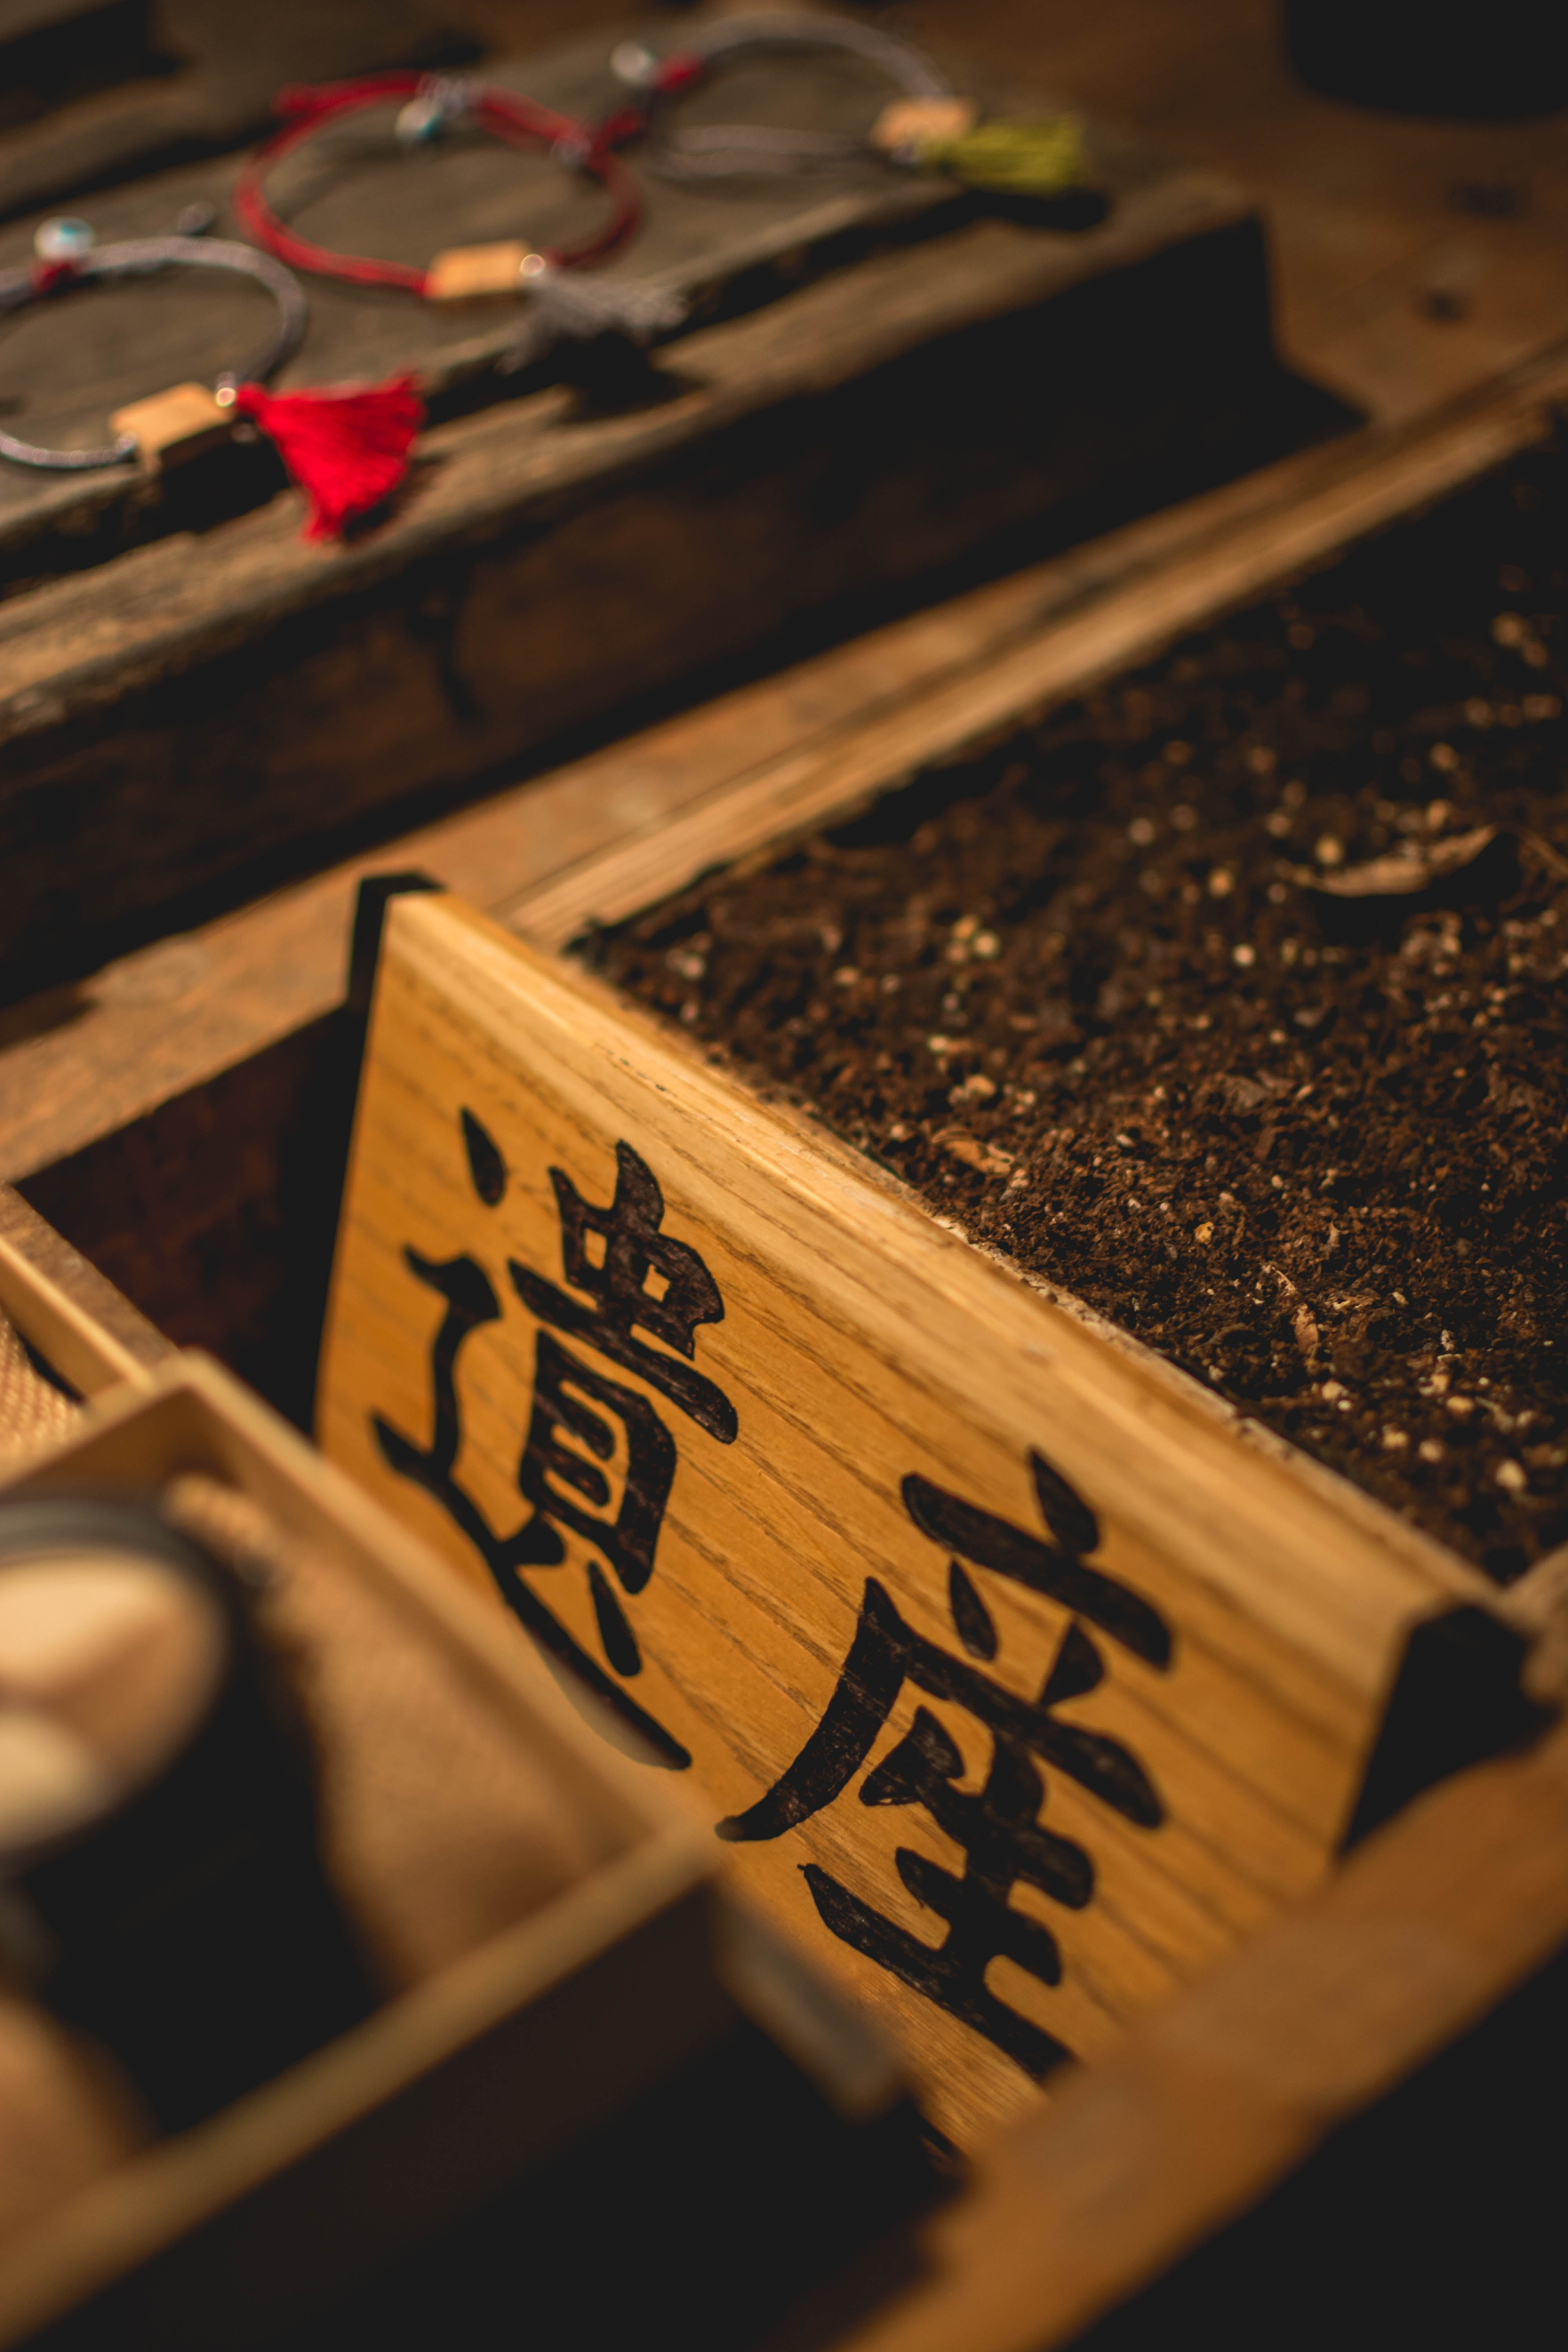 Free stock photo of carved wood, chip, Japanese, wood